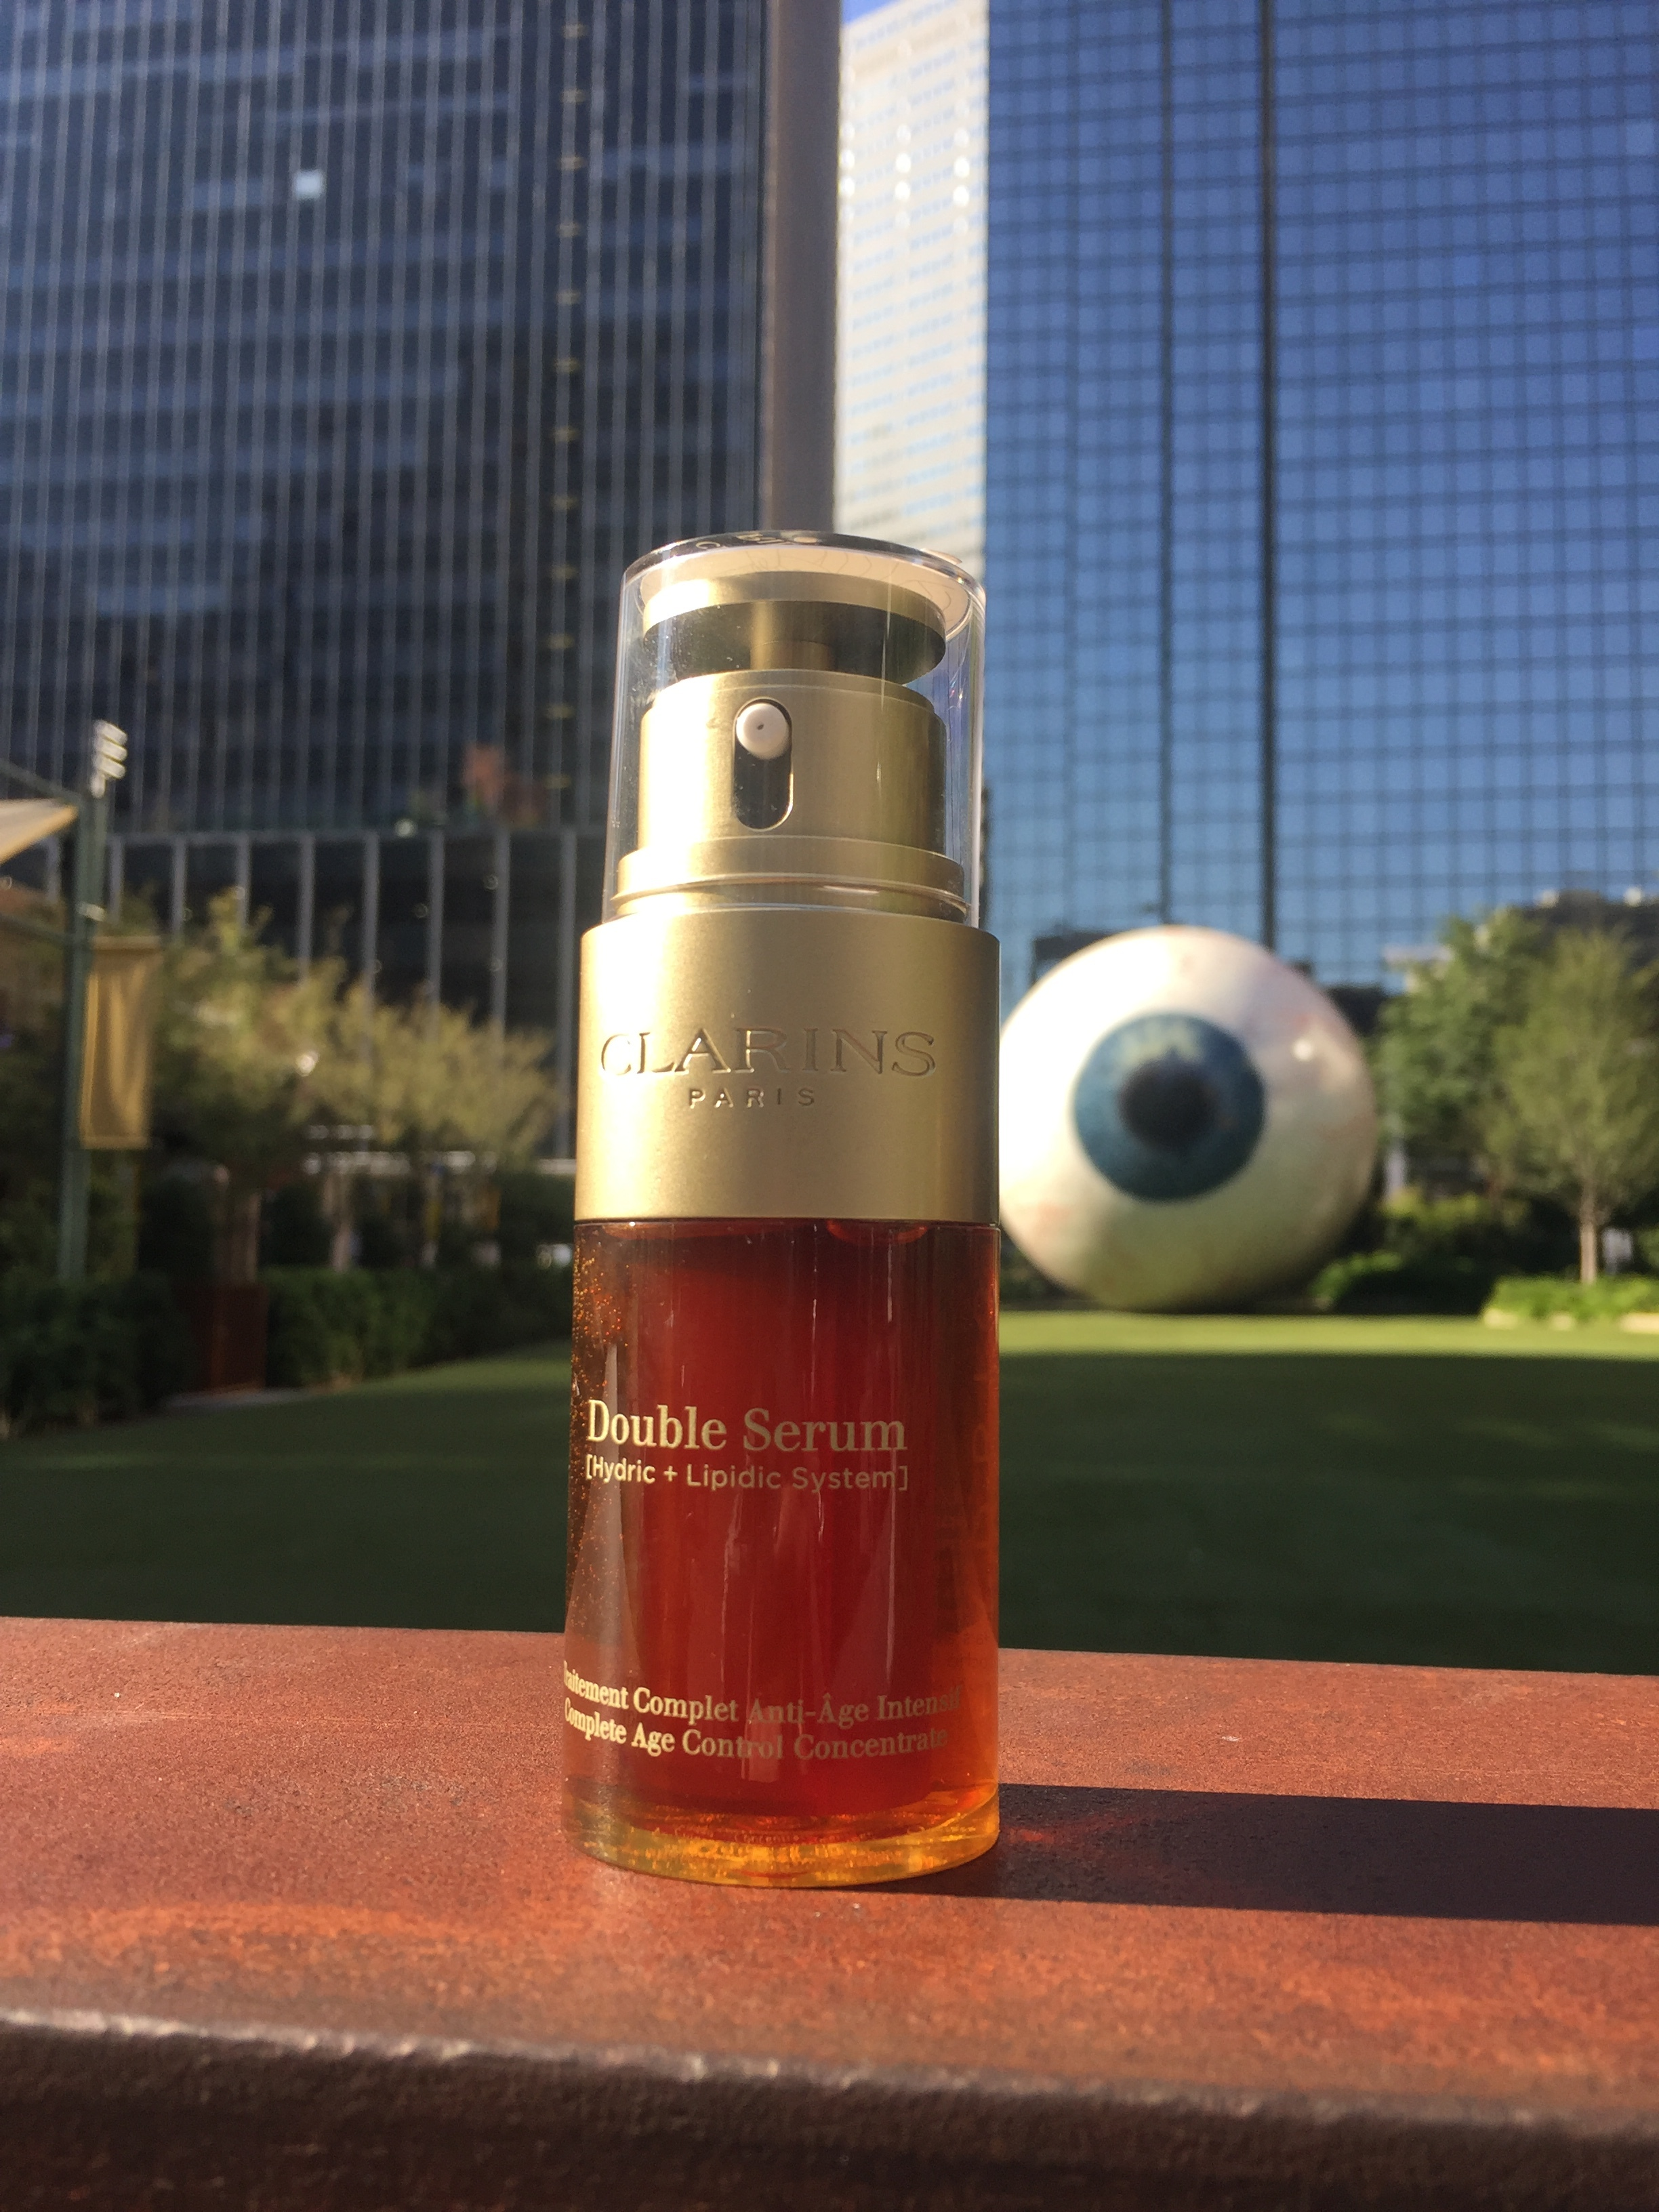 Clarins Double Serum  in front of the Dallas Eye, right by The Joule Hotel.